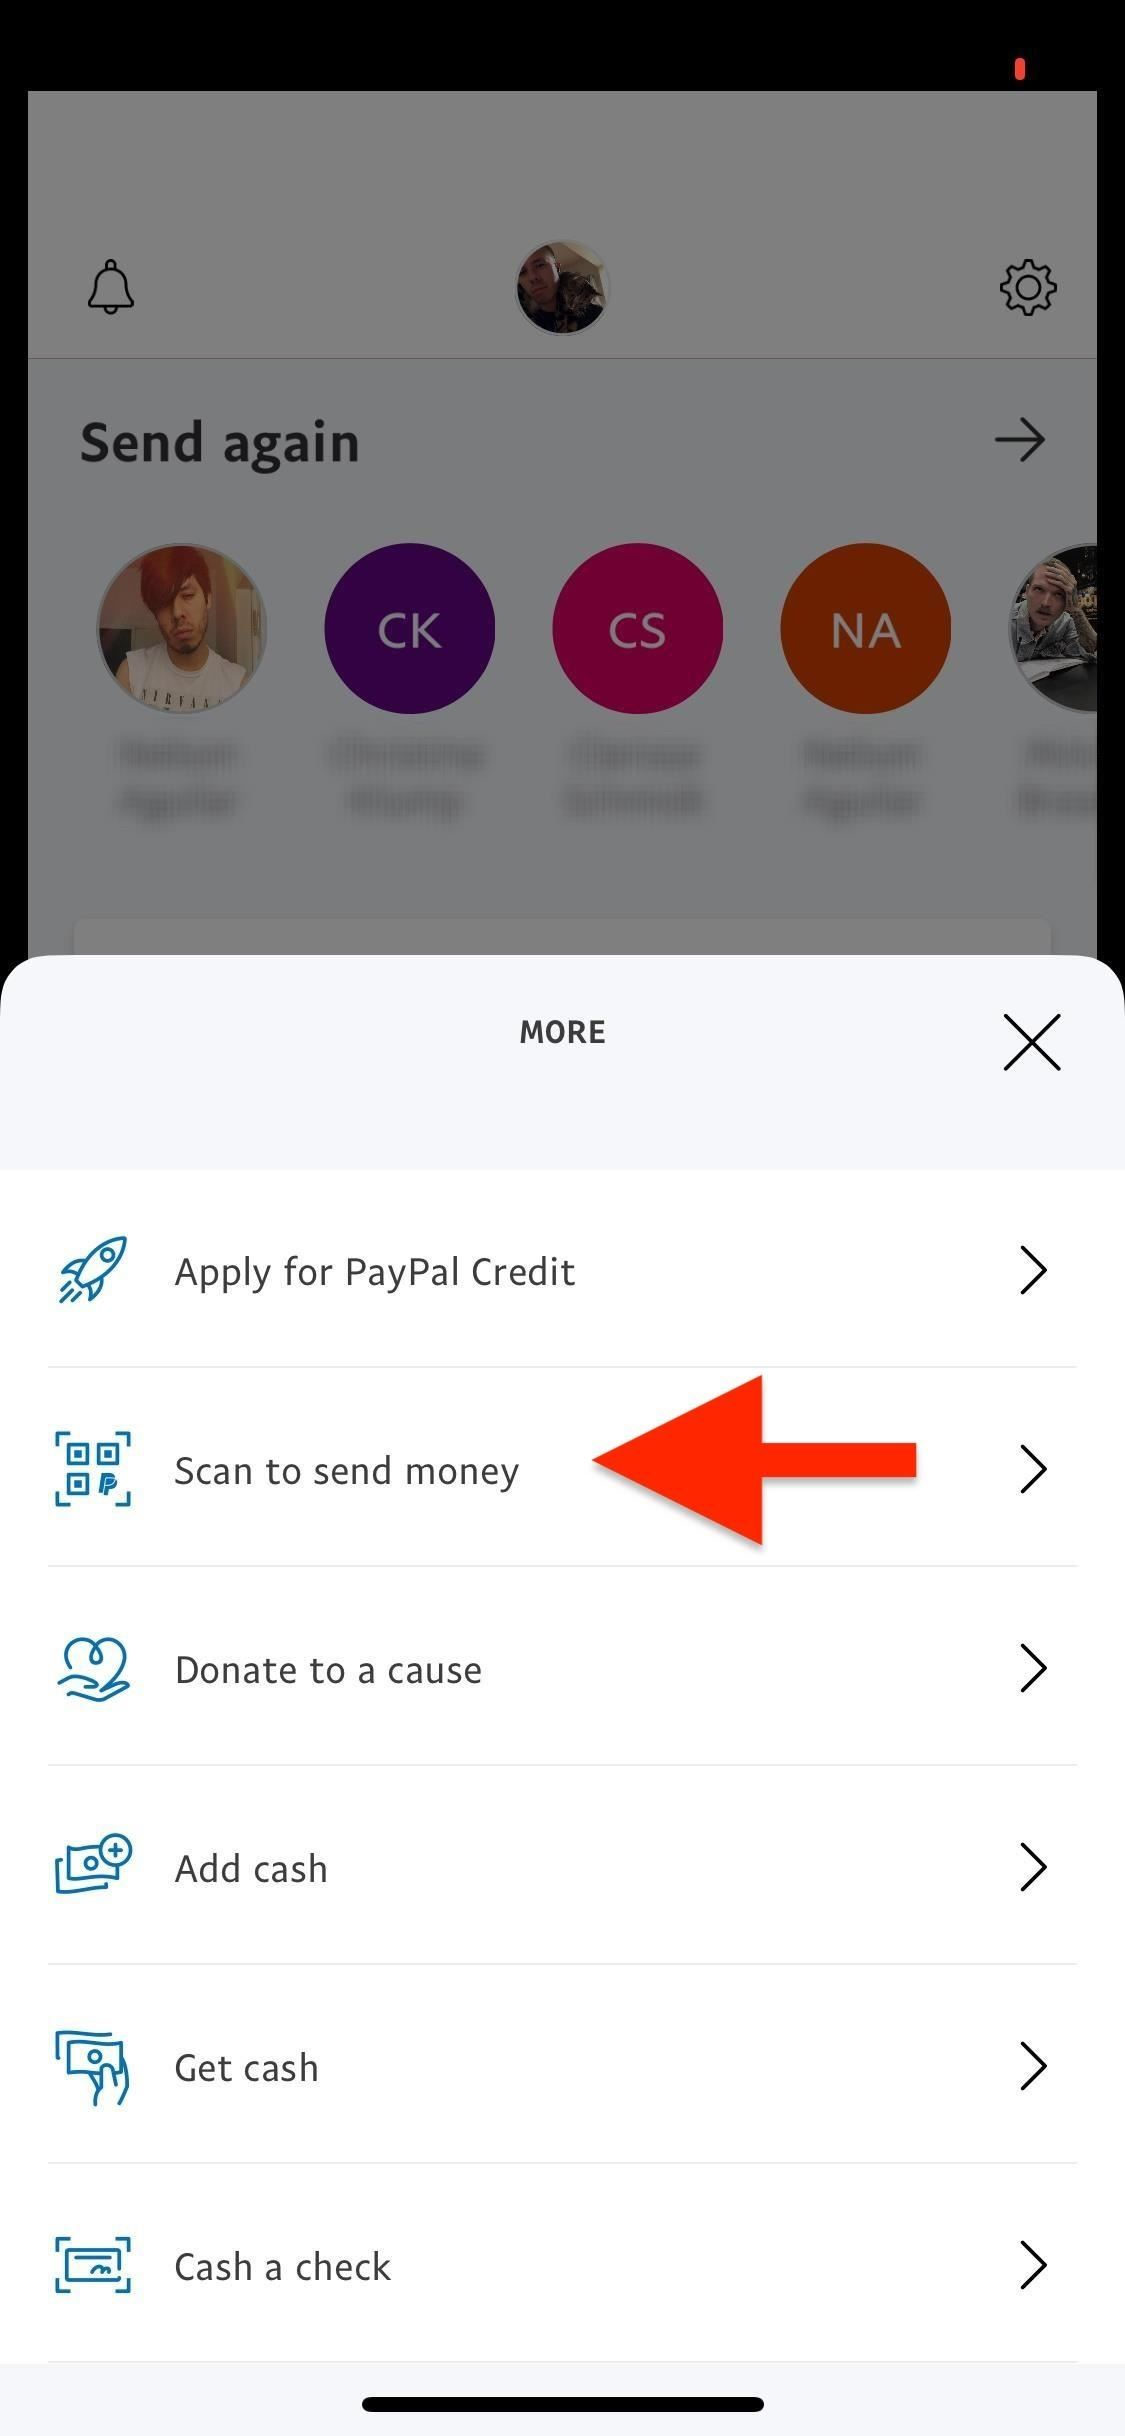 This allows you to share PayPal and scan QR codes for faster transactions when receiving or sending money